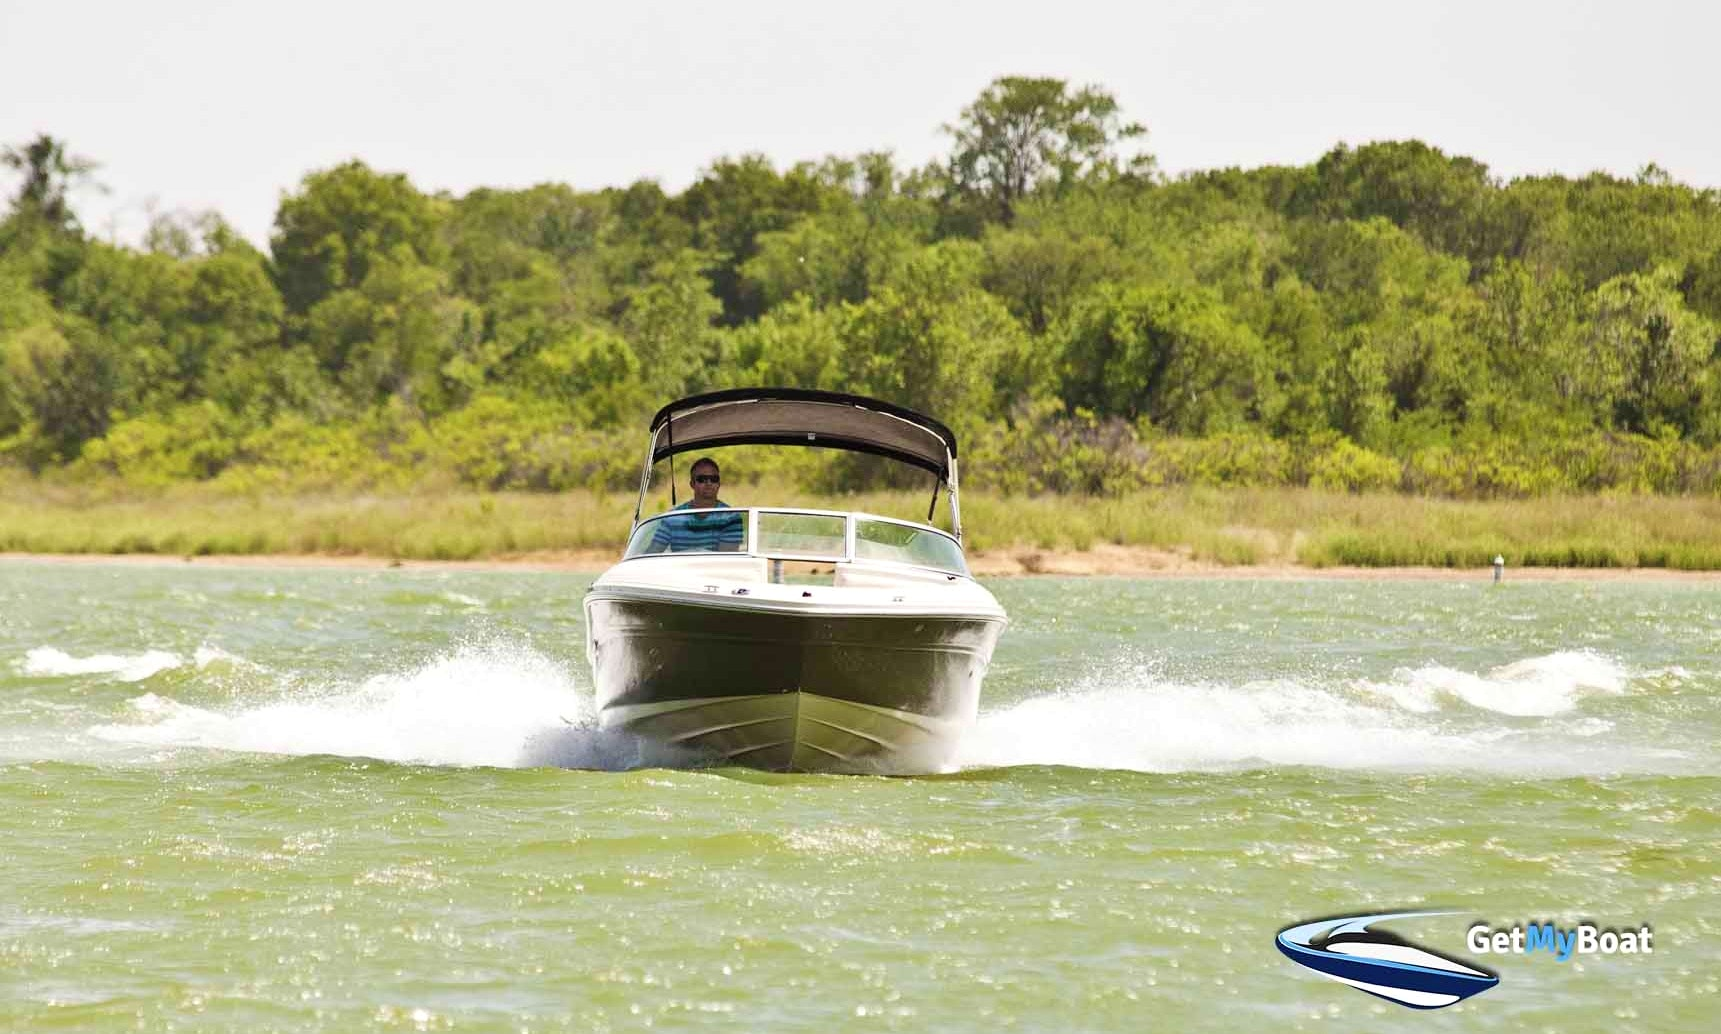 21' Sea Ray Ski/Wakeboard Boat for Rent near Lake Lewisville